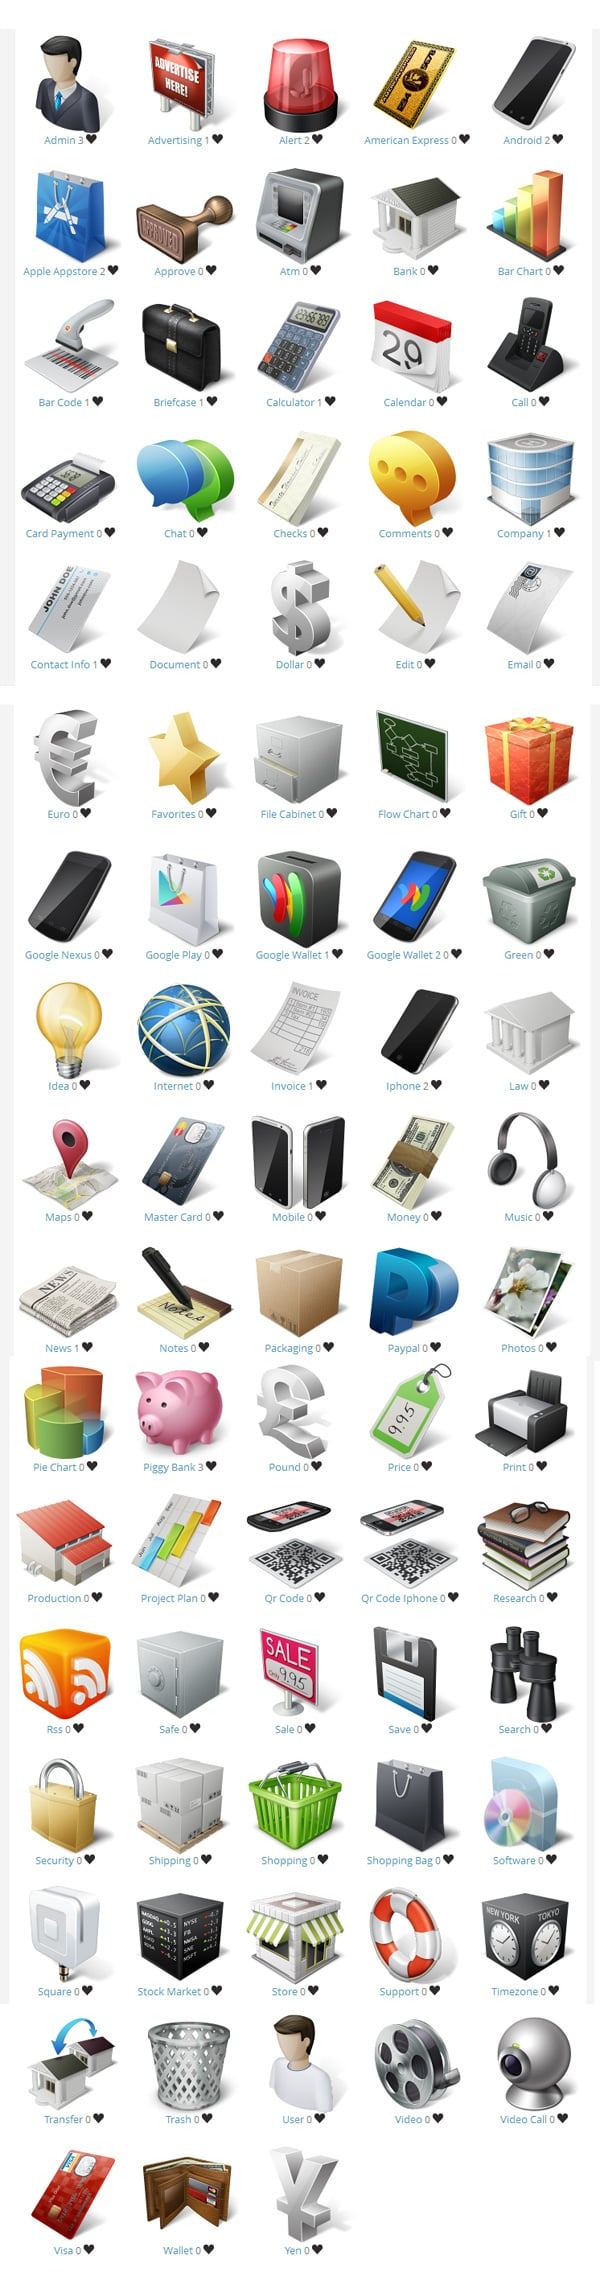 Download free e-Commerce and business icons set